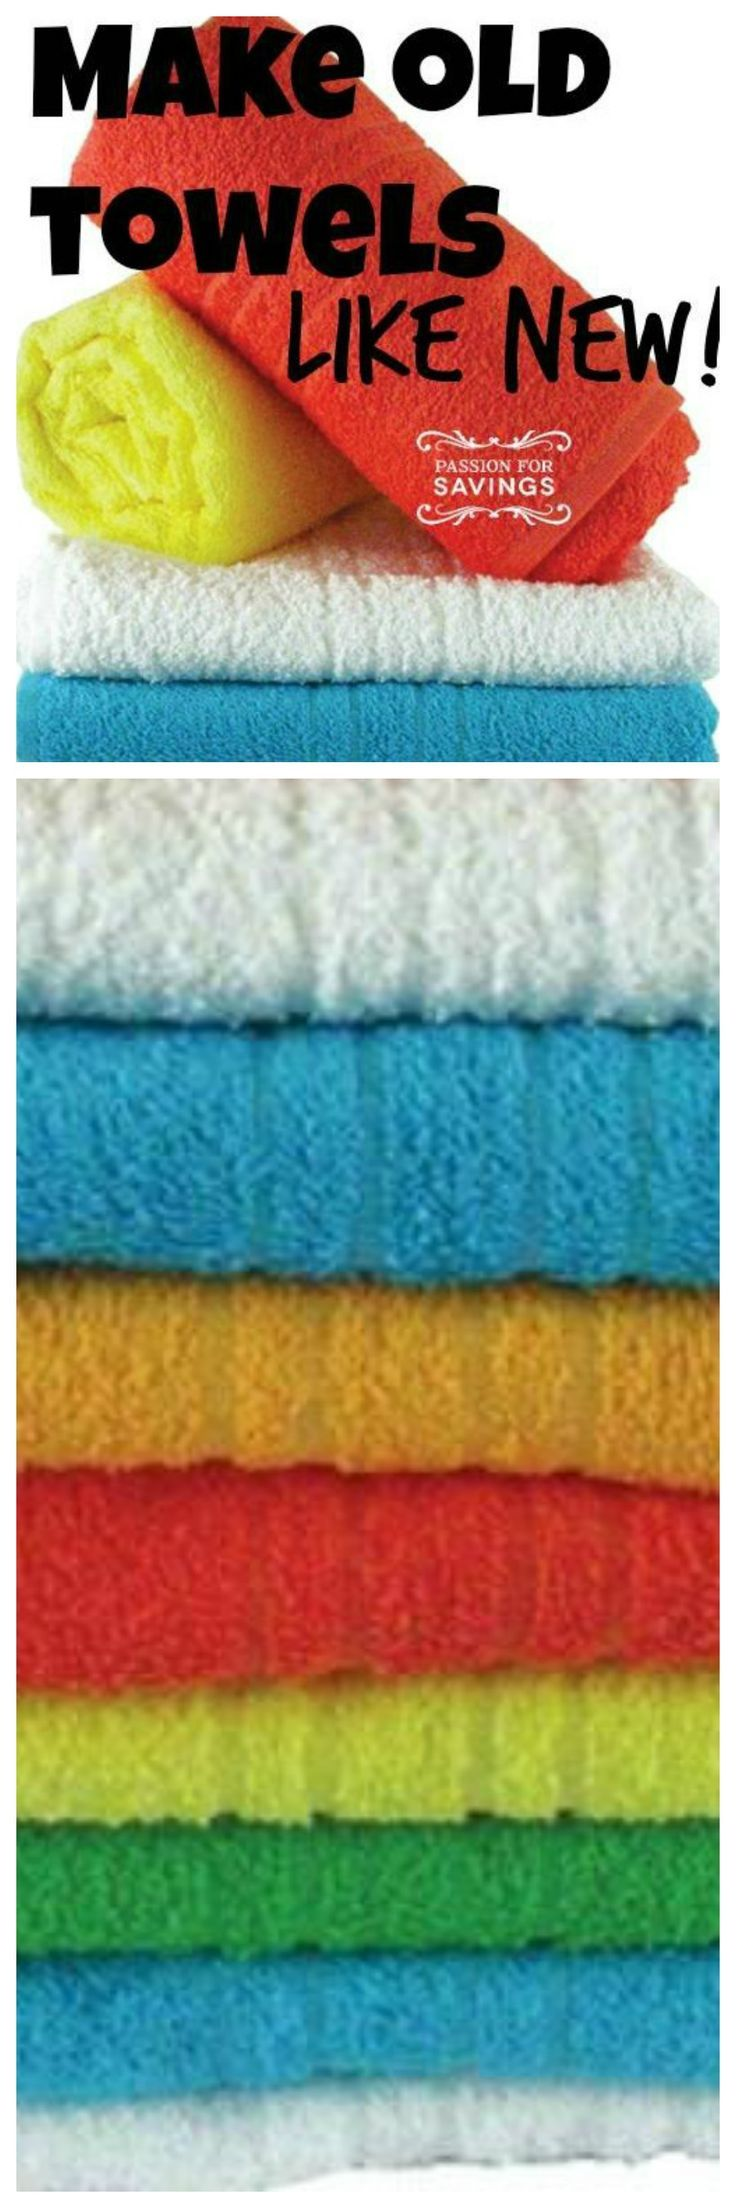 25 best ideas about towels smell on pinterest clean mildew towels clean towels vinegar and. Black Bedroom Furniture Sets. Home Design Ideas